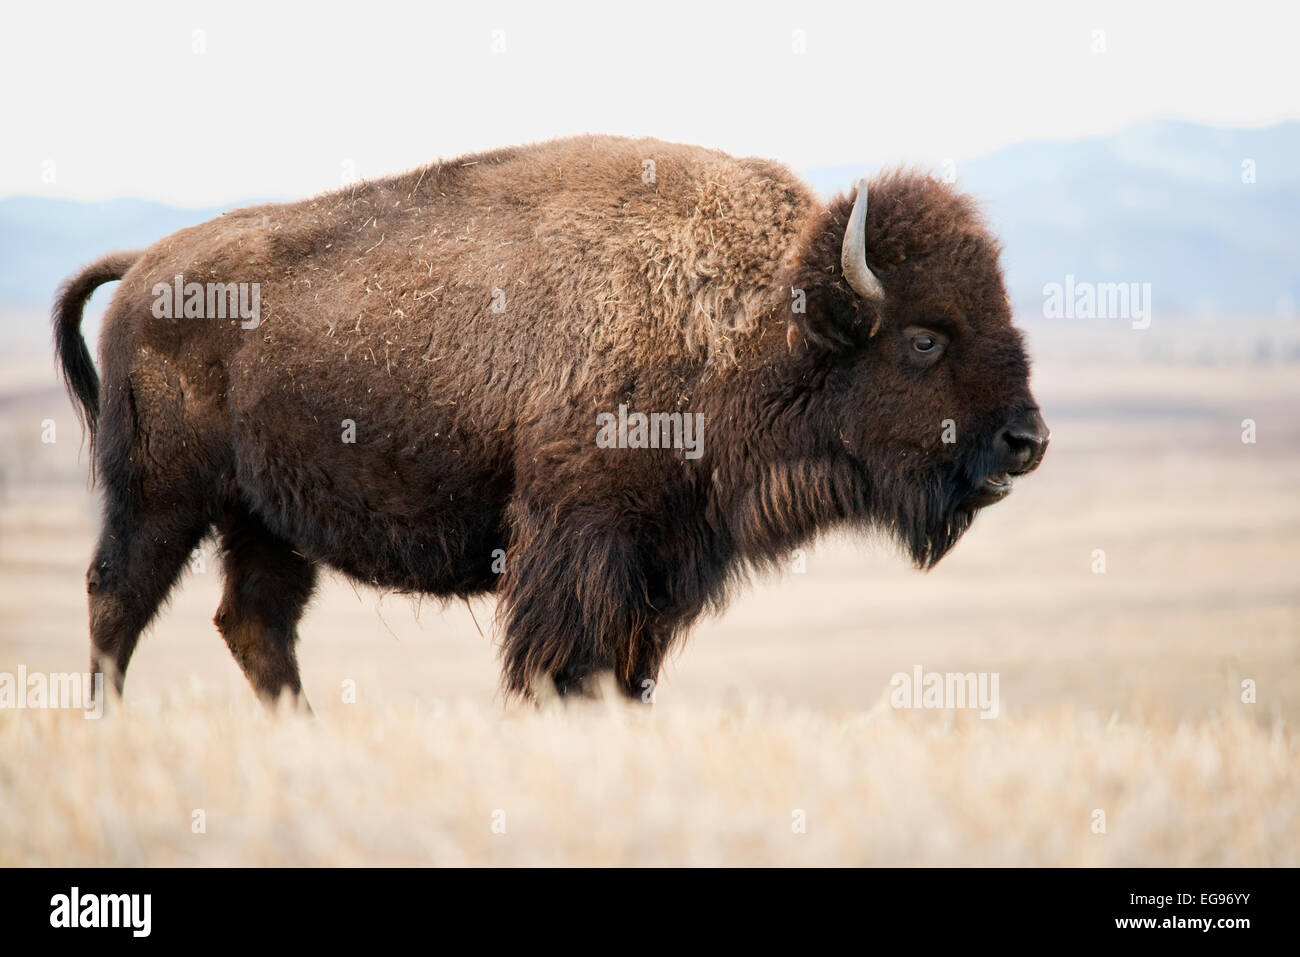 A large female bison standing in a field. - Stock Image